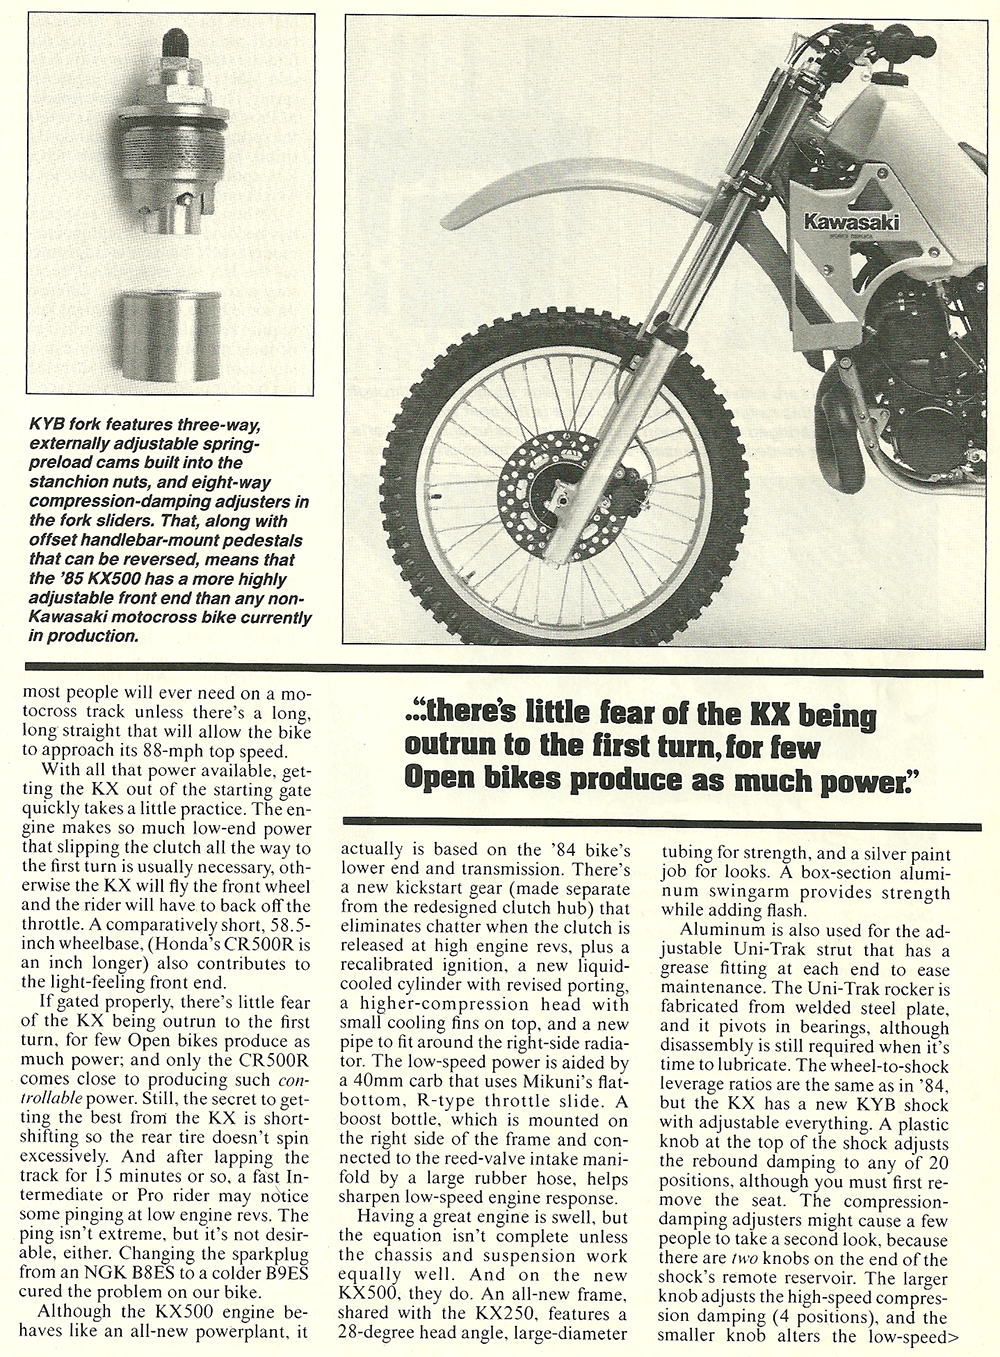 1985 Kawasaki KX500 road test 04.jpg